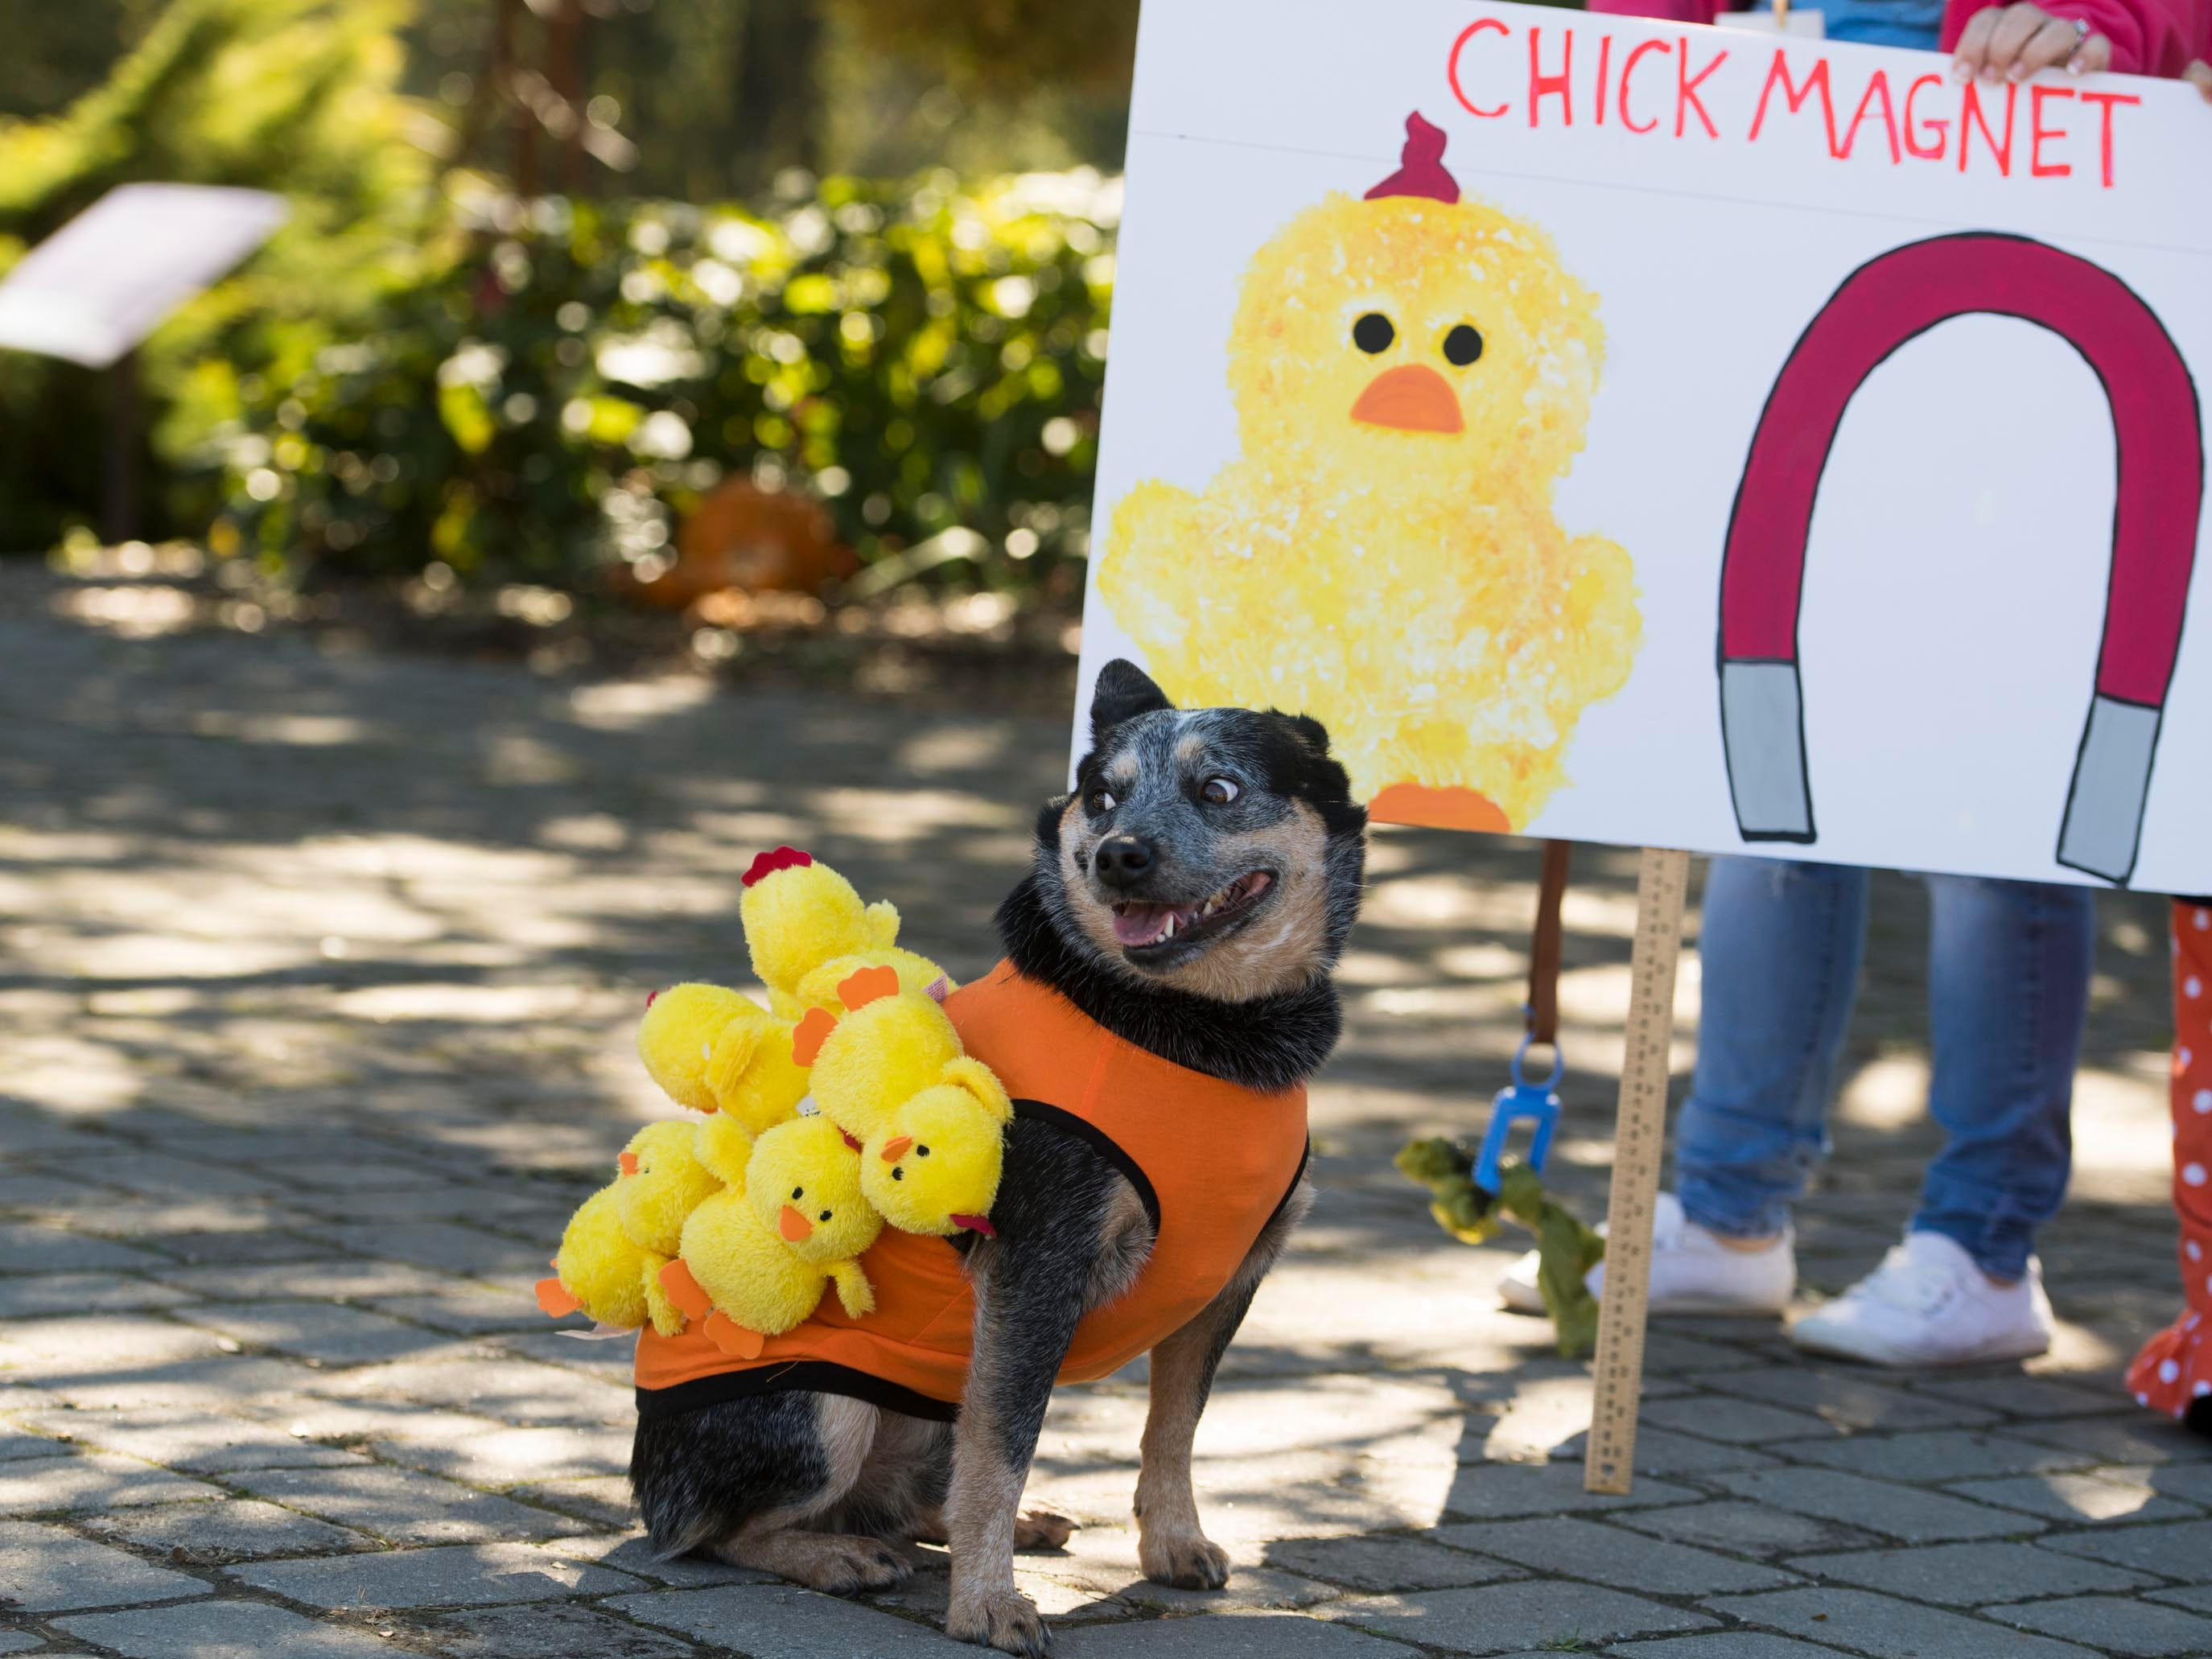 Christi Hinote brought Cash, a Blue Heeler dressed as a Chick Magnet to compete in the Howl-O-Ween Pooch Parade and Pet Expo at the UT Gardens on Sunday, October 21, 2018.